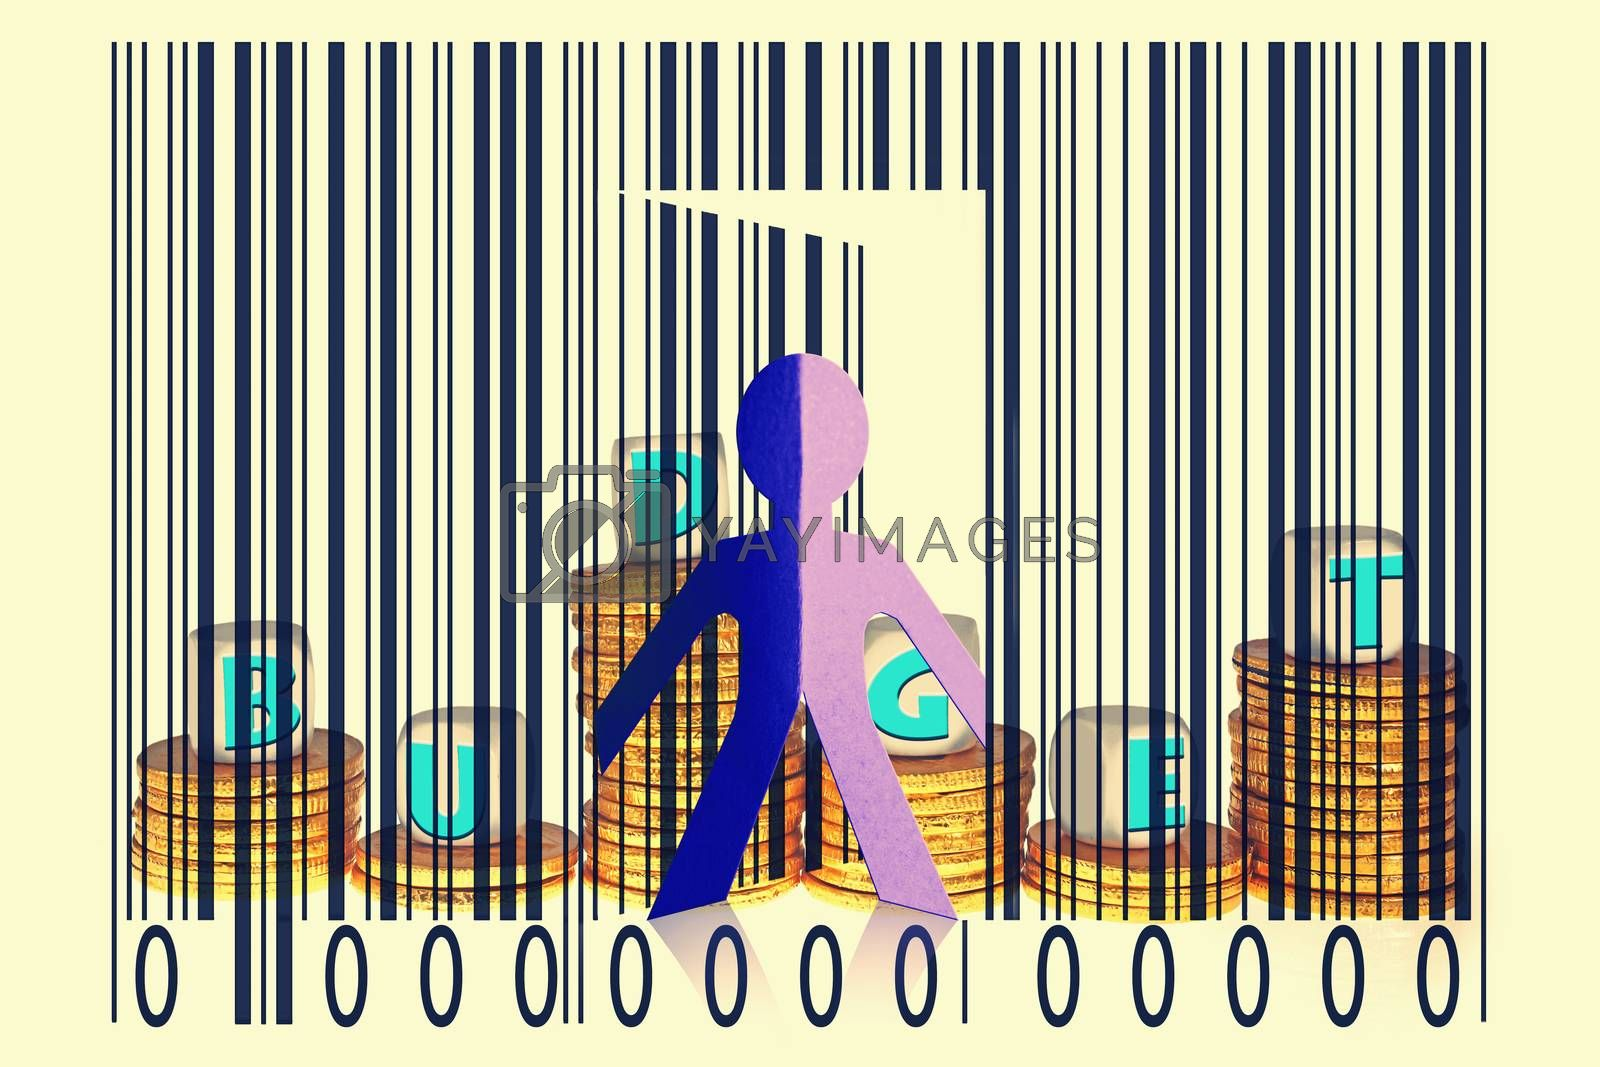 Paperman coming out of a bar code with Budget word